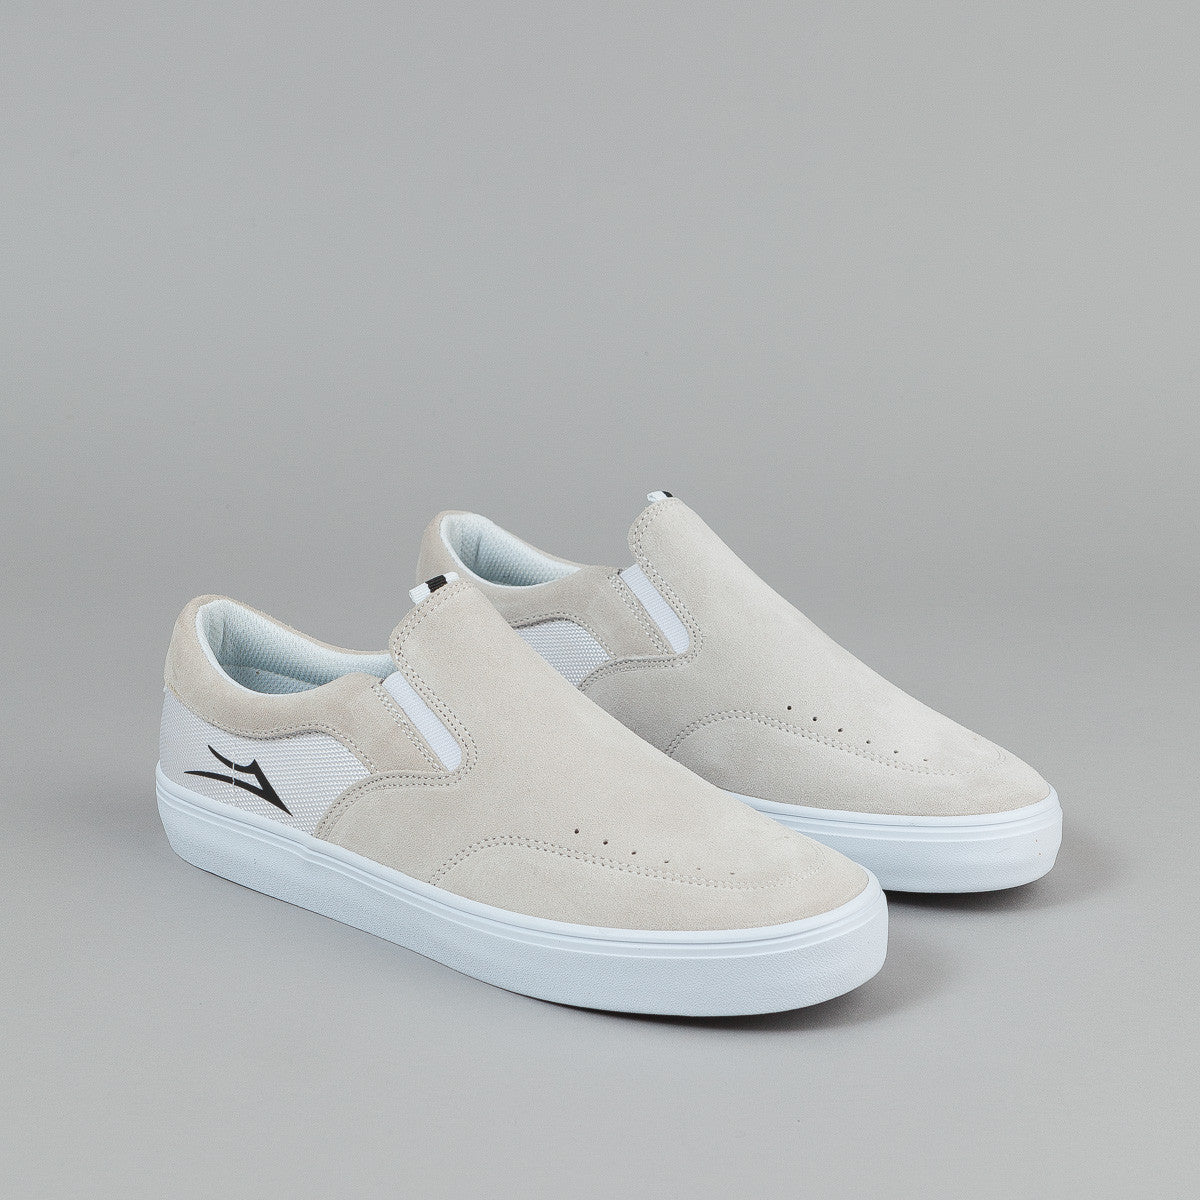 Lakai Chalk Pack Owen Shoes - White